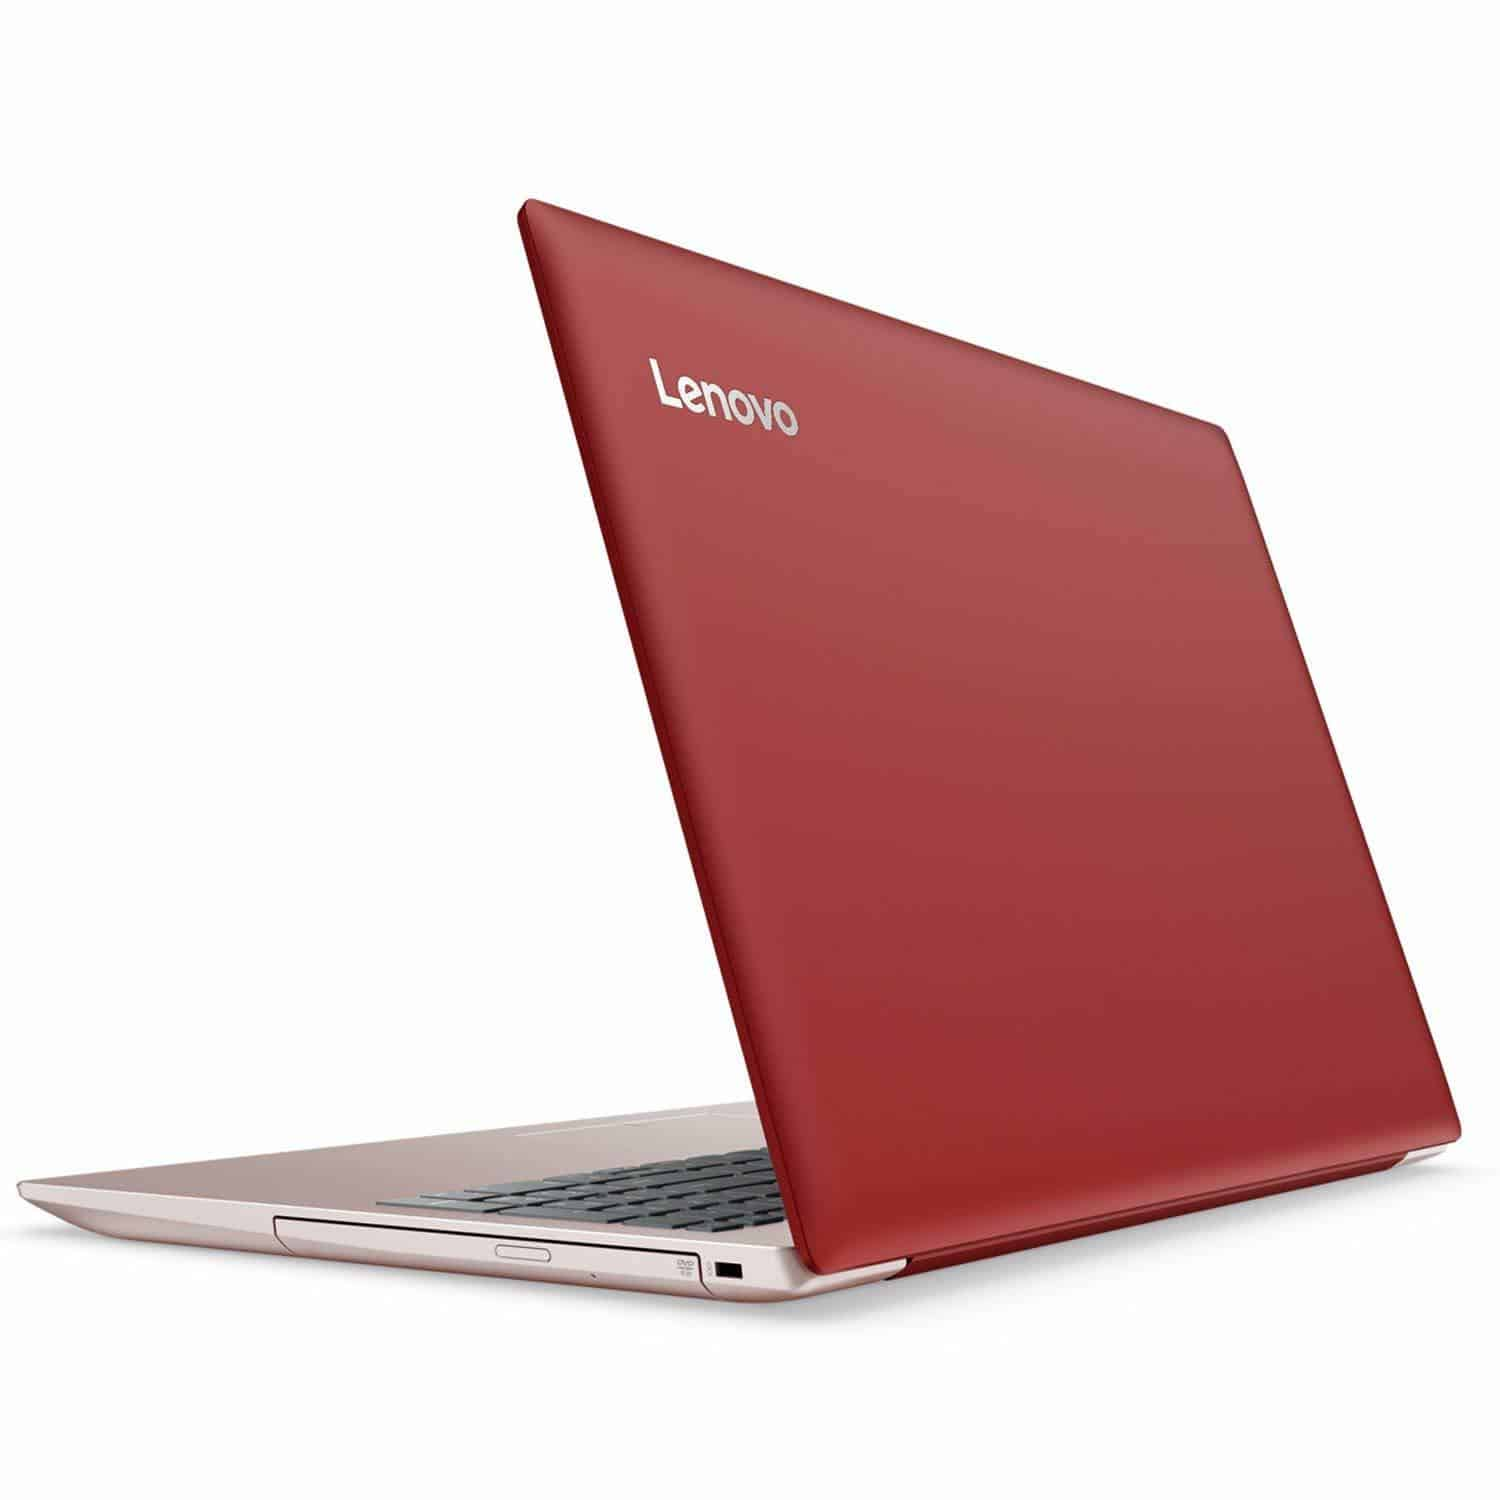 Lenovo Ideapad 320 Red Review